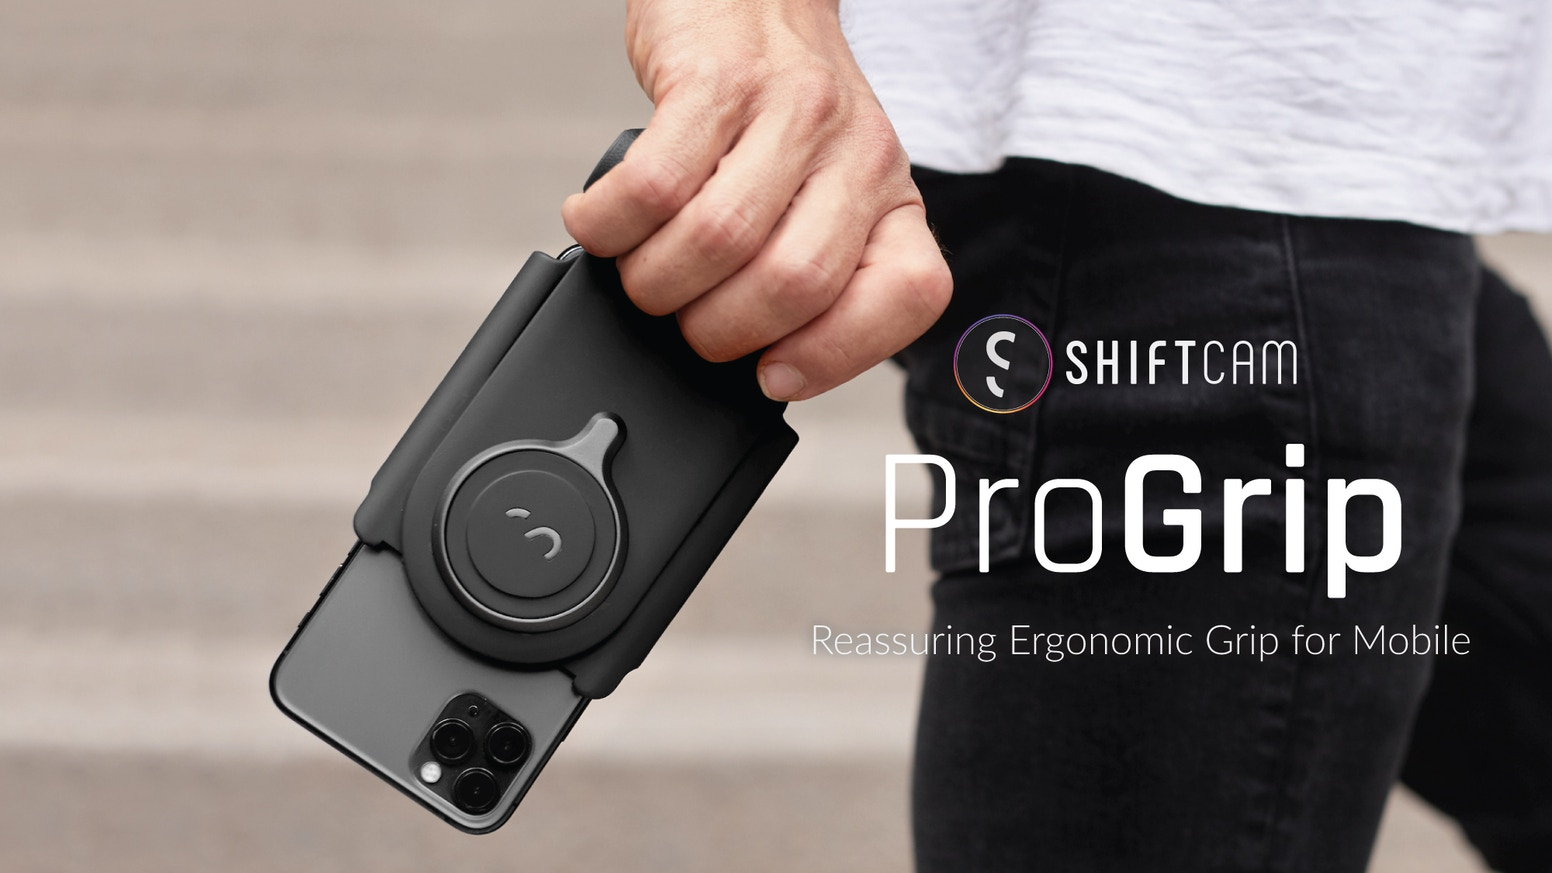 The ProGrip is not just evolutionary, it's a multifunctional Battery Grip that redefines mobile photography and videography.  $710,185 funded and counting, pre-order ProGrip on Indiegogo now!